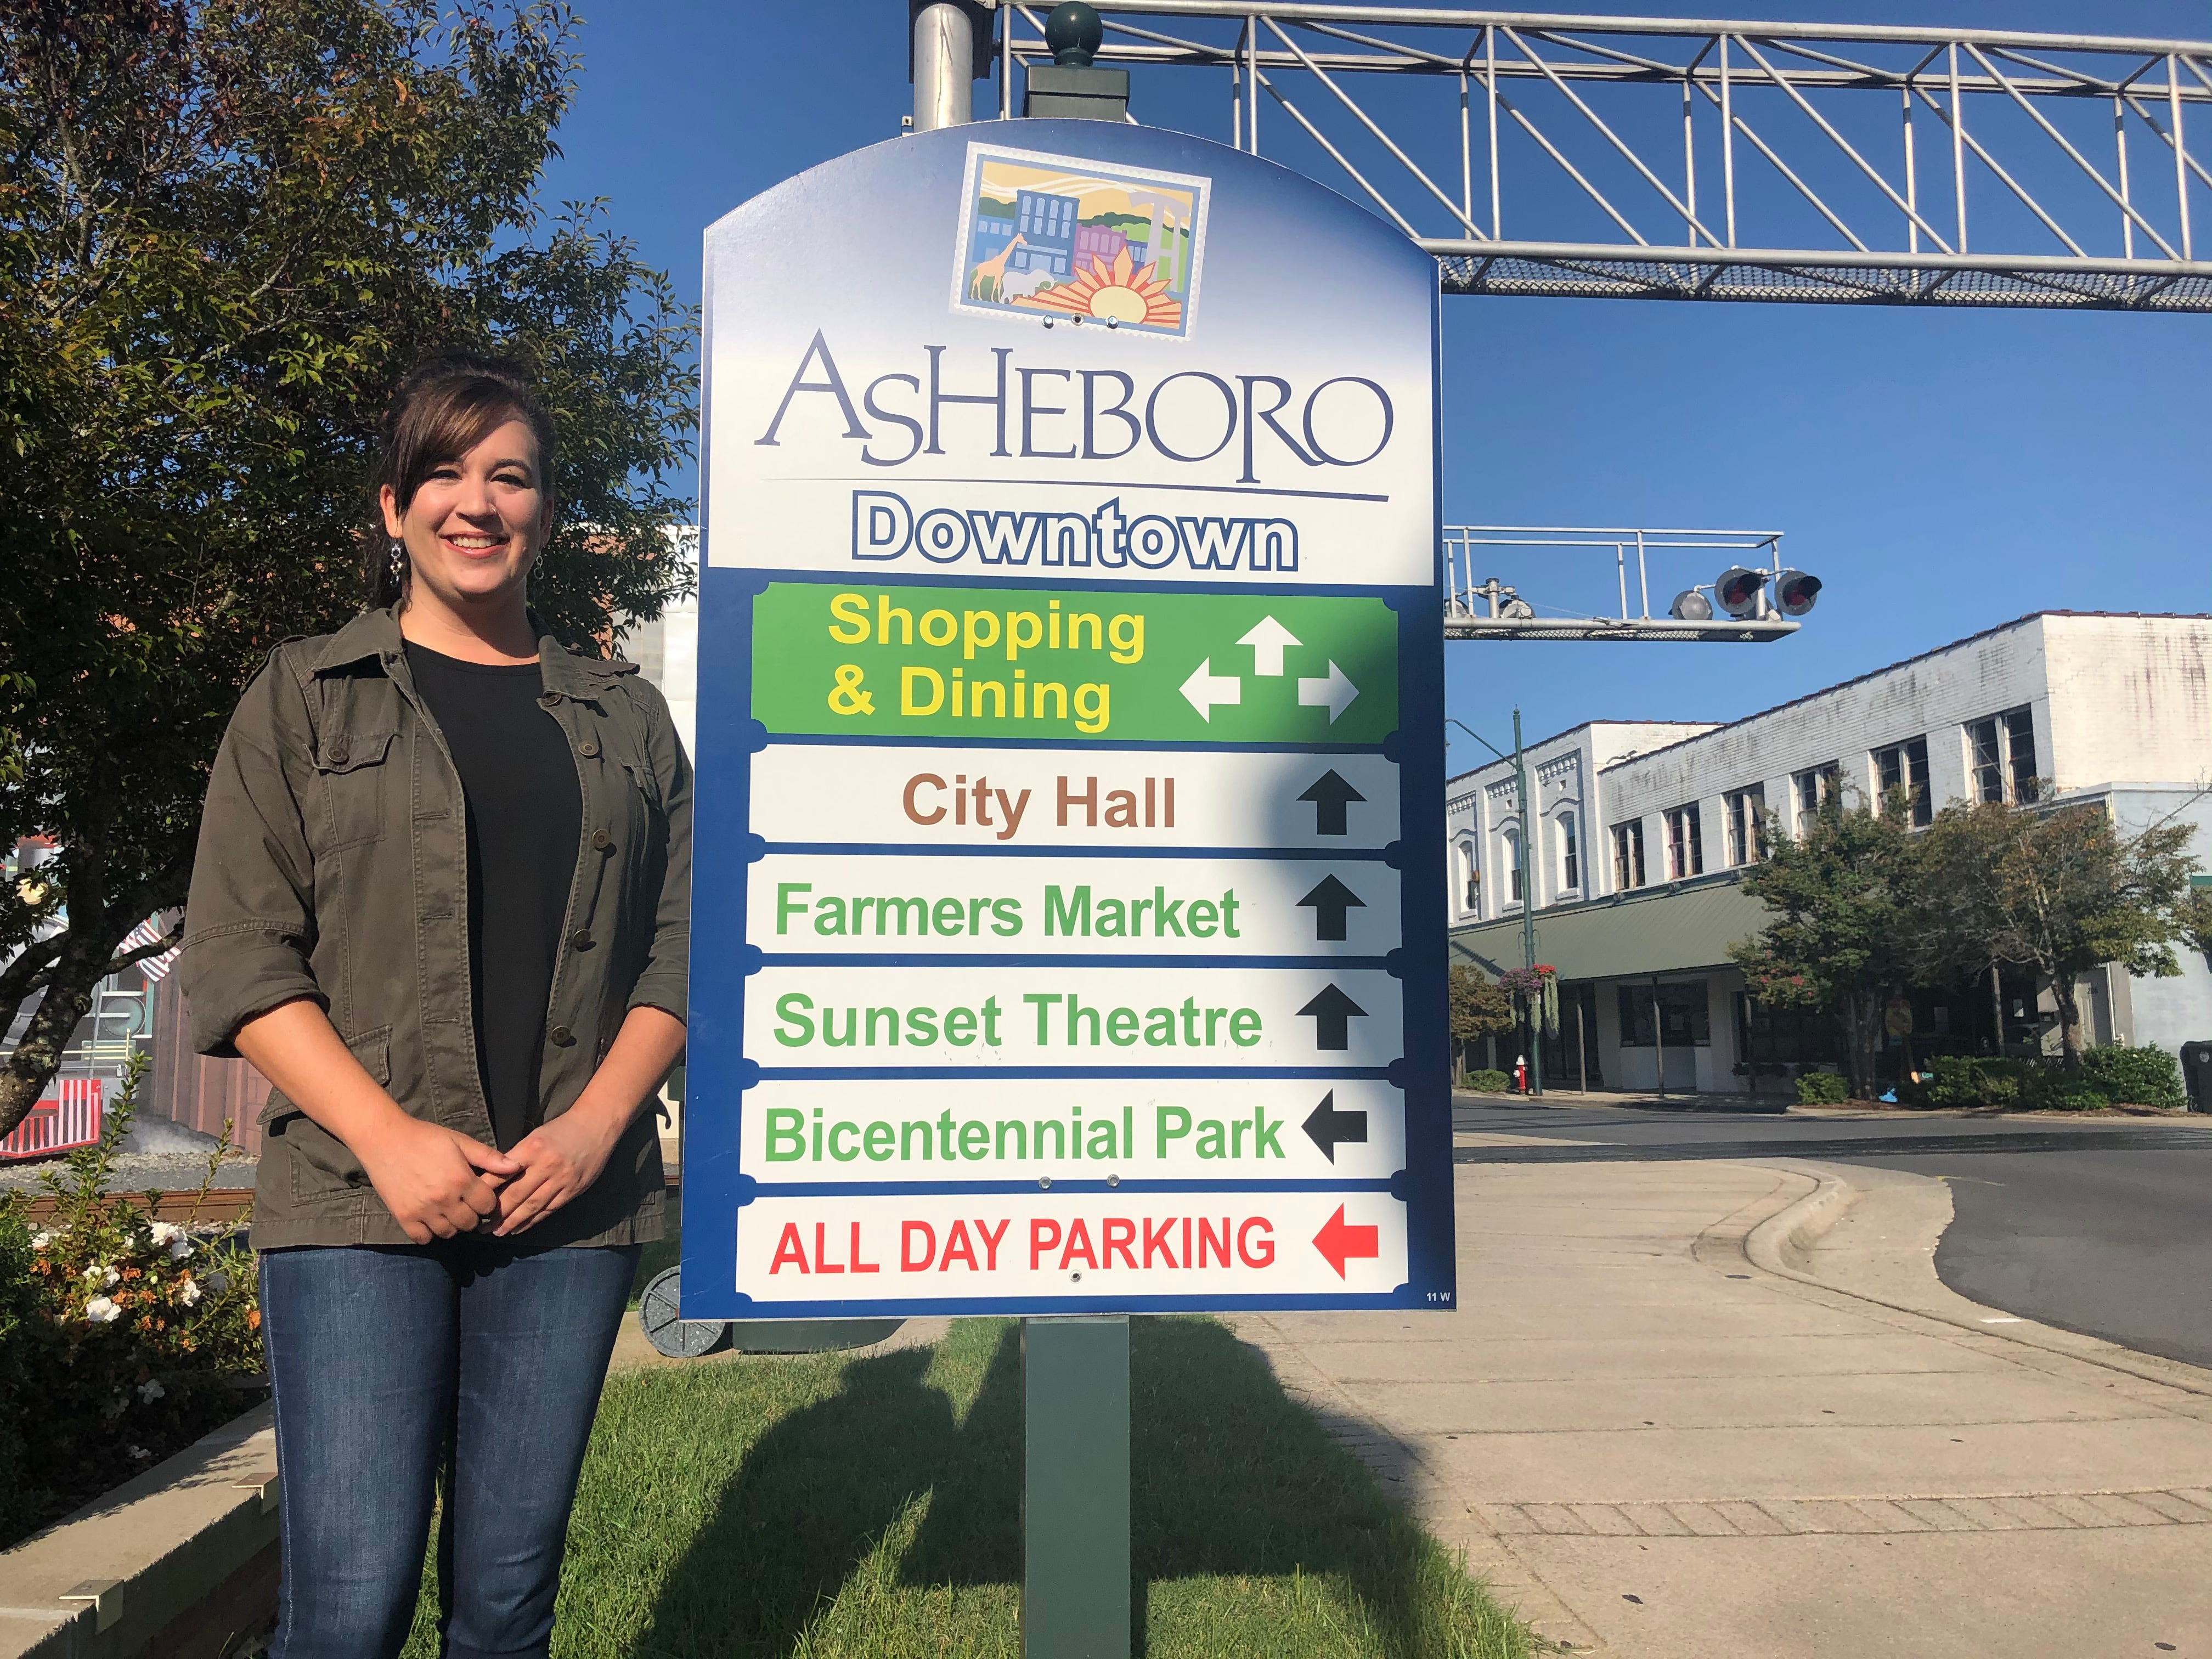 Asheboro Nc Bicentennial Park + Halloween 2020 Asheboro's new Main Street director: 'I know this program works'